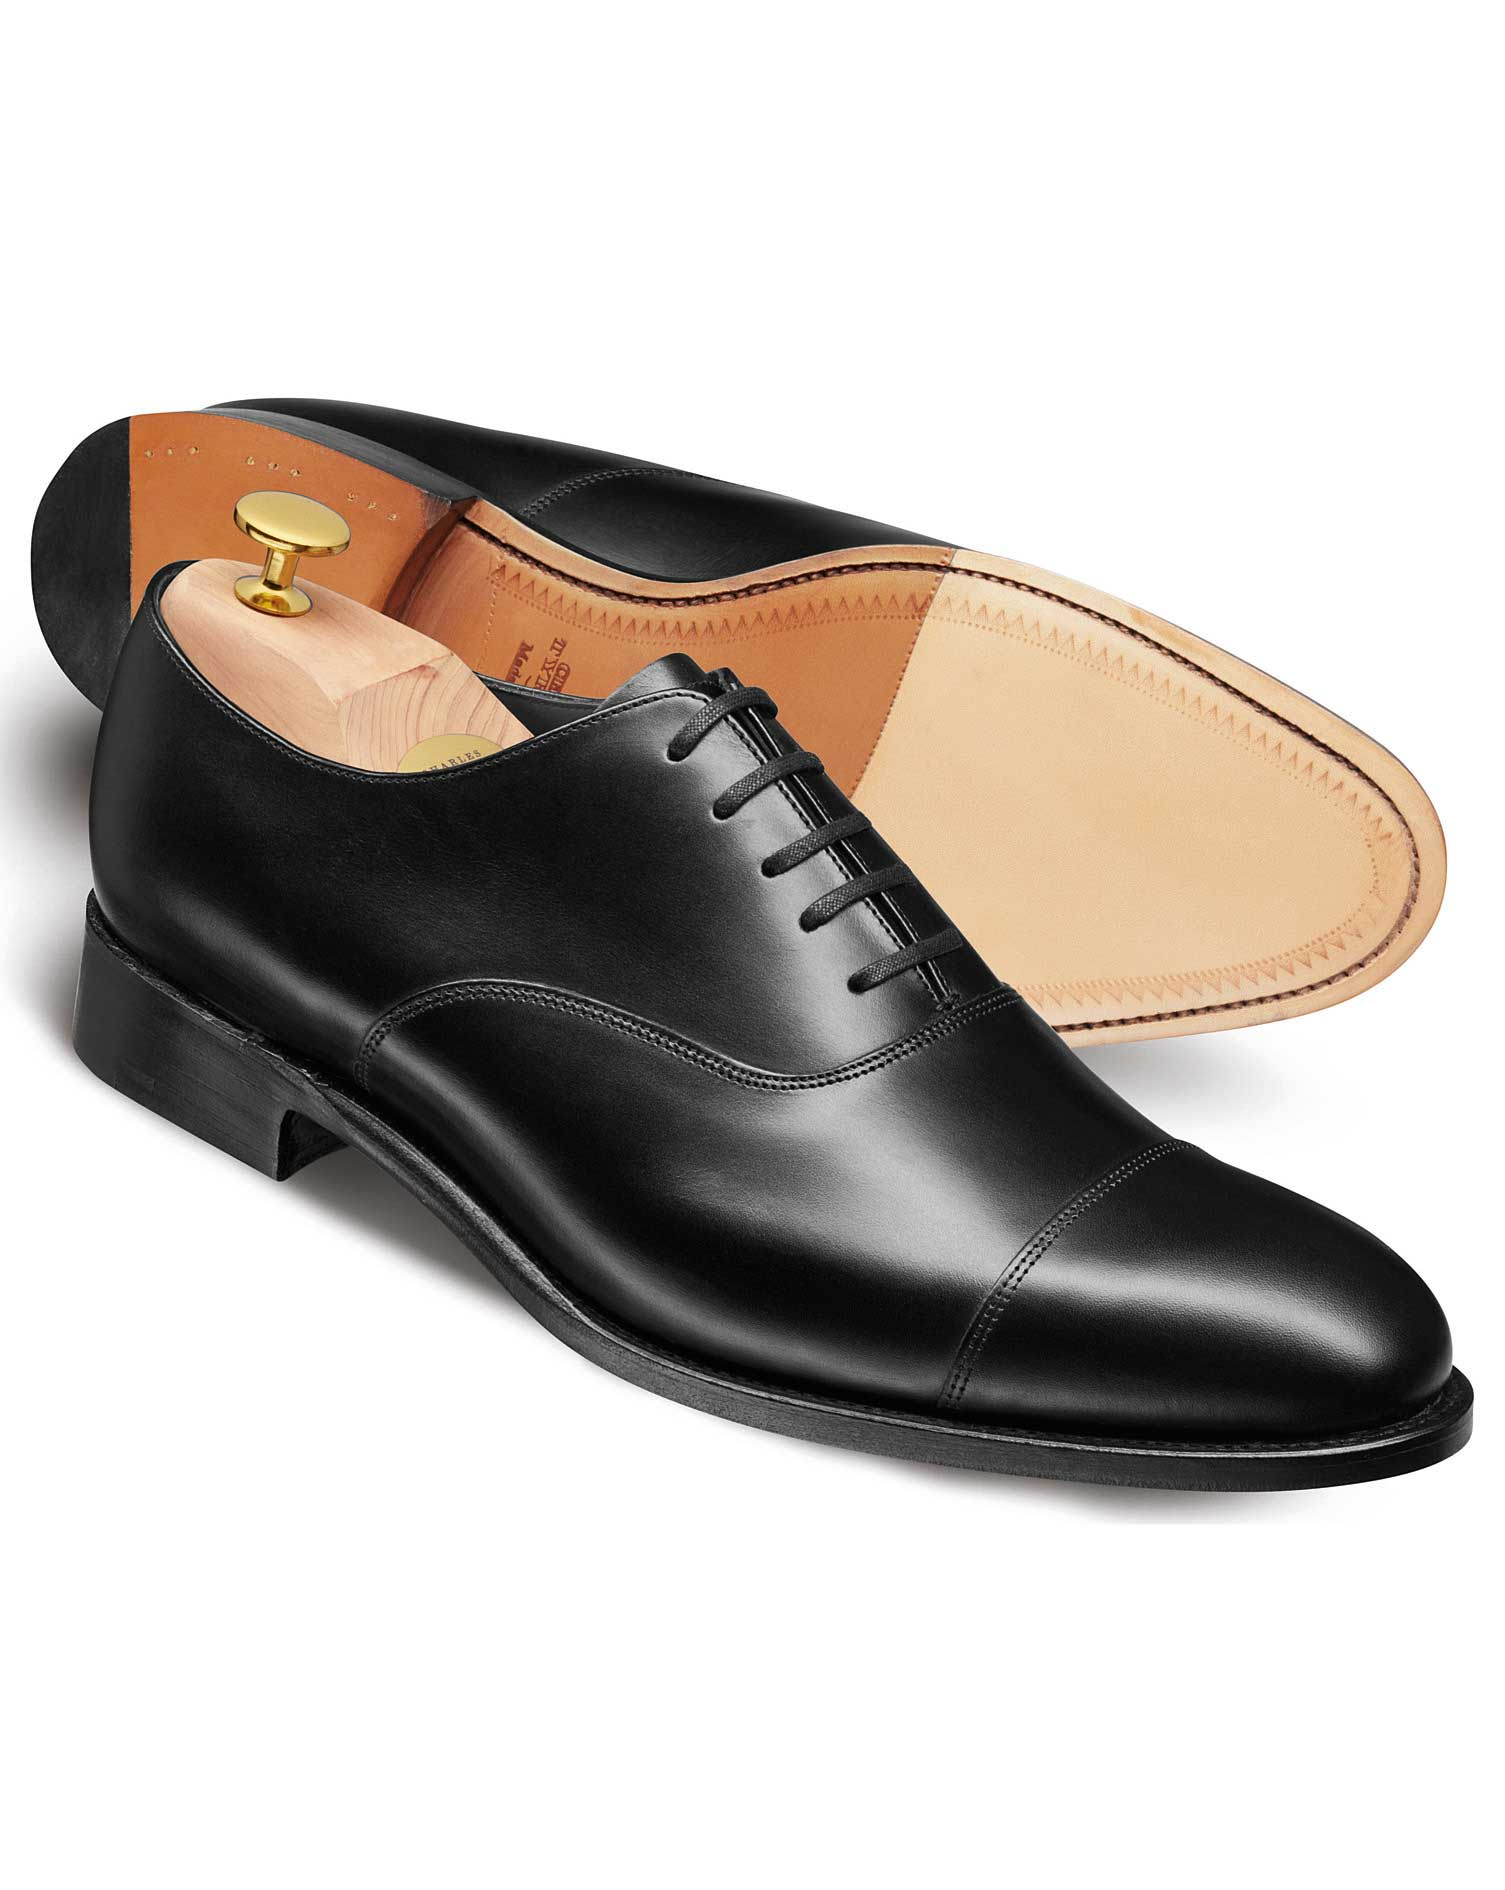 black heathcote calf leather toe cap oxford shoes ZSVGGXB